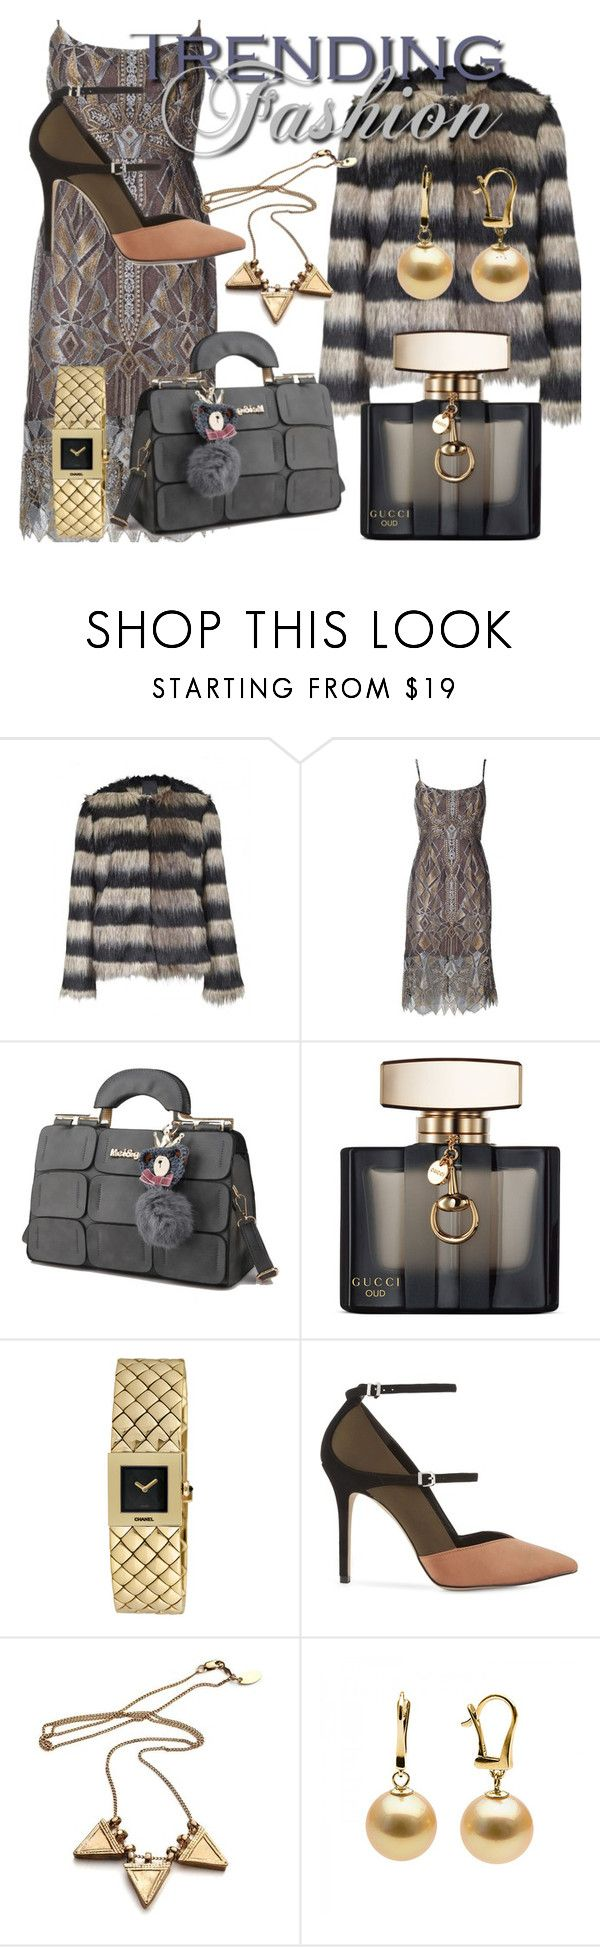 """Fashion Trending"" by drahuschka on Polyvore featuring Ichi, BCBGMAXAZRIA, Gucci, Chanel and Reiss"